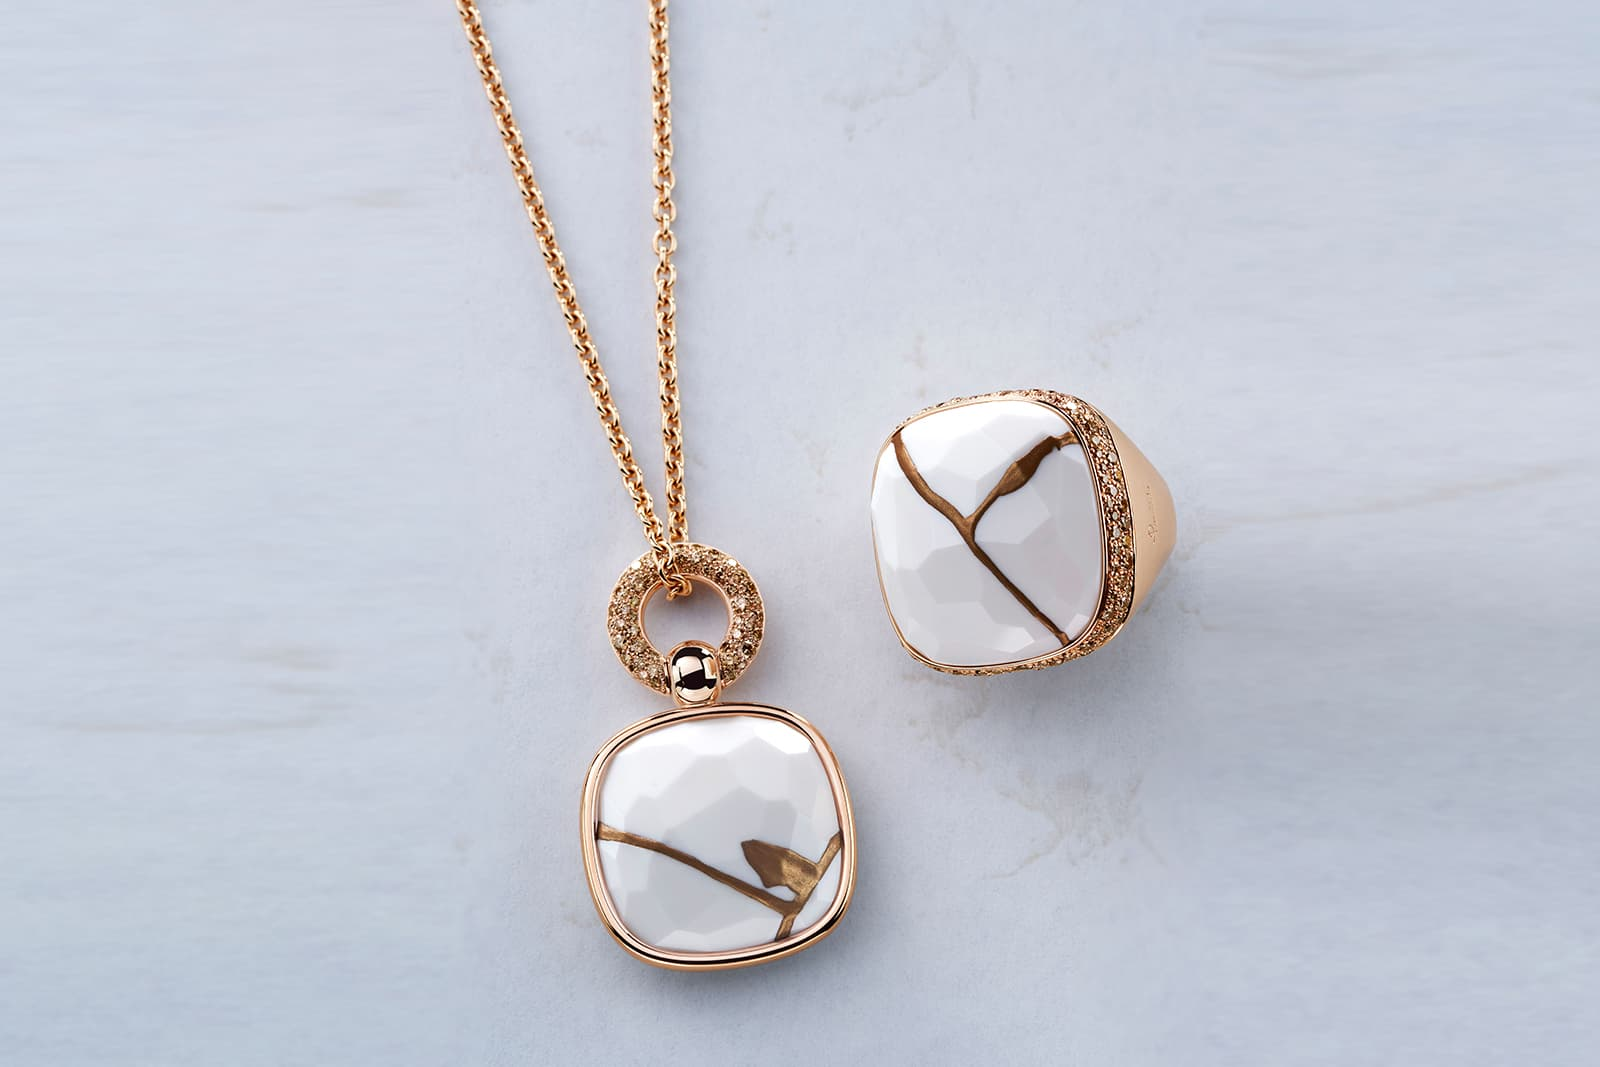 Pomellato Kintsugi Collection ring and pendant in rose gold with kogolong and brown diamonds